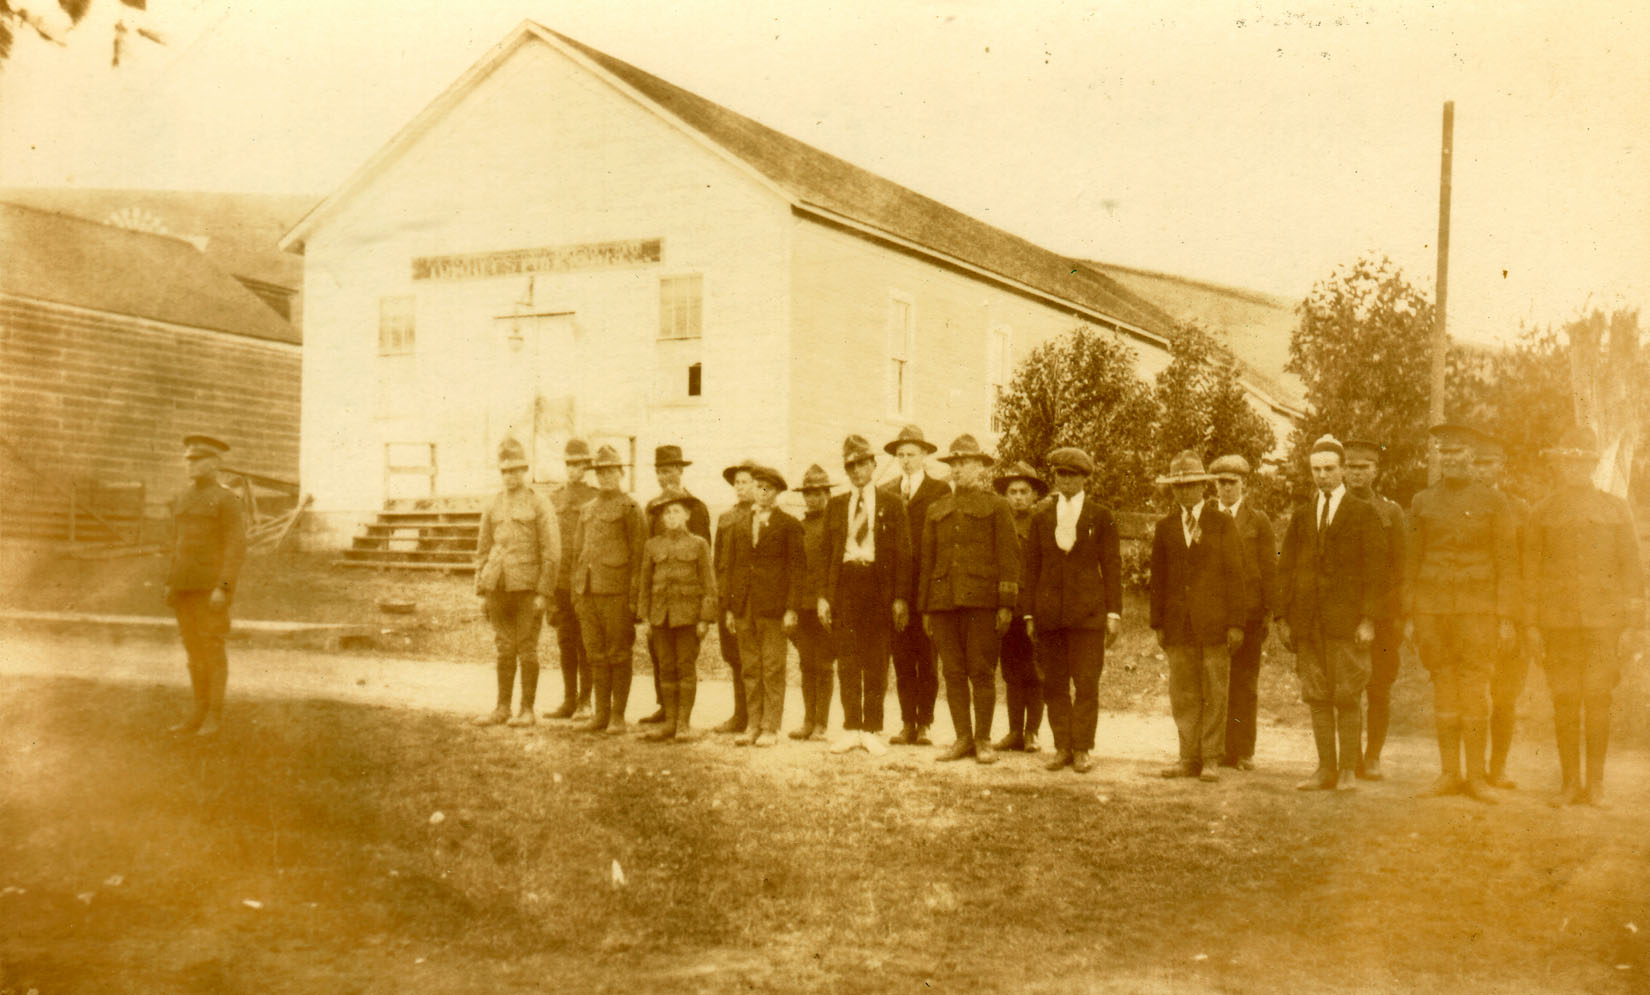 Original Town Hall with WWI ROTC soldiers, c. 1917.